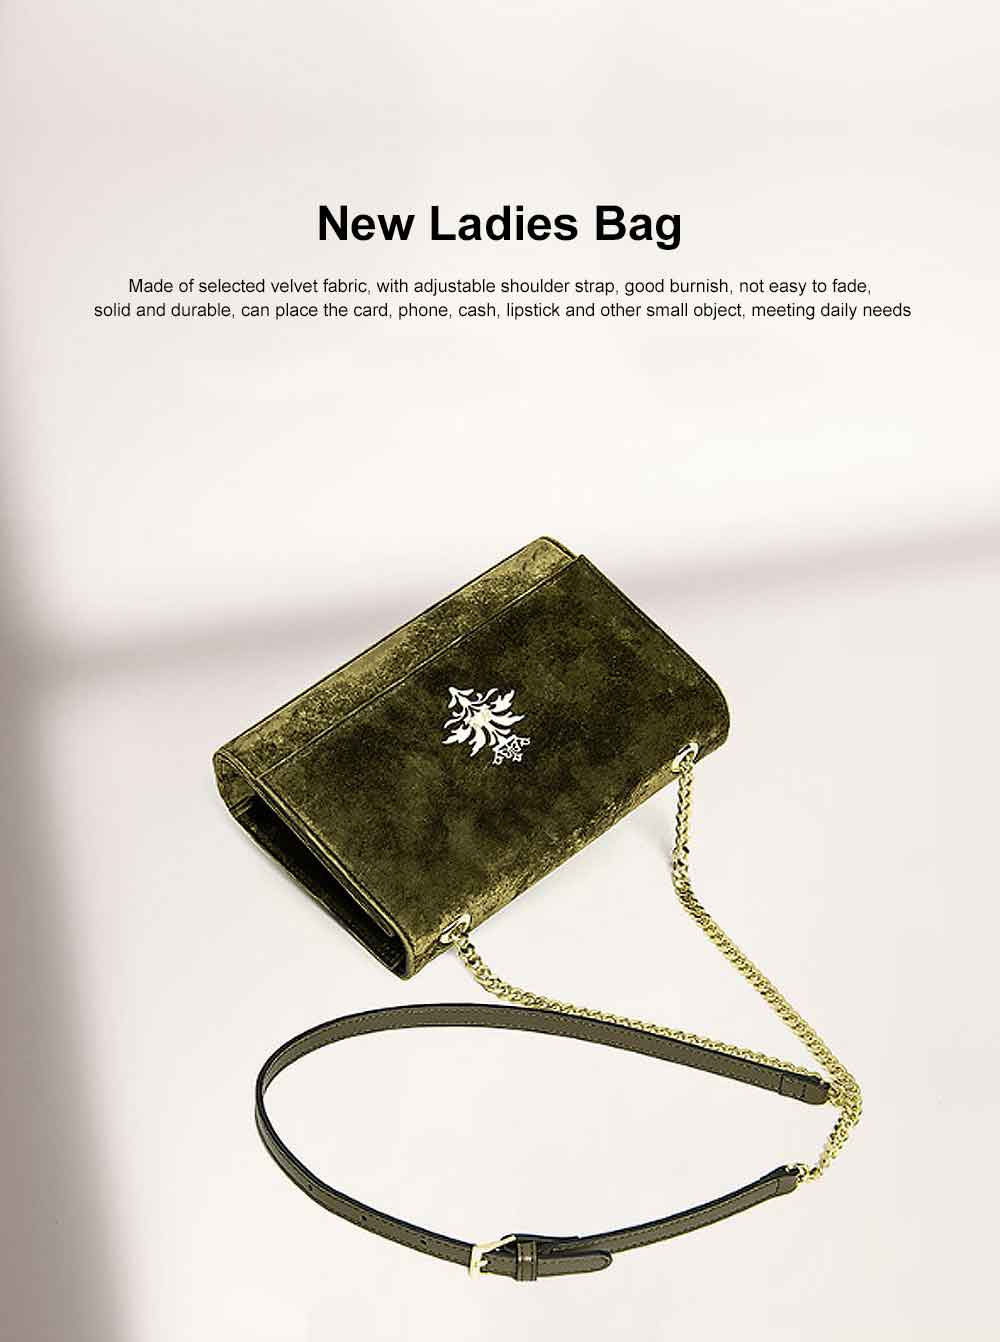 New Velvet Fashion Flip Cover Small Square Bag, Ladies Shoulder Bag, Autumn Winter, 2019 0